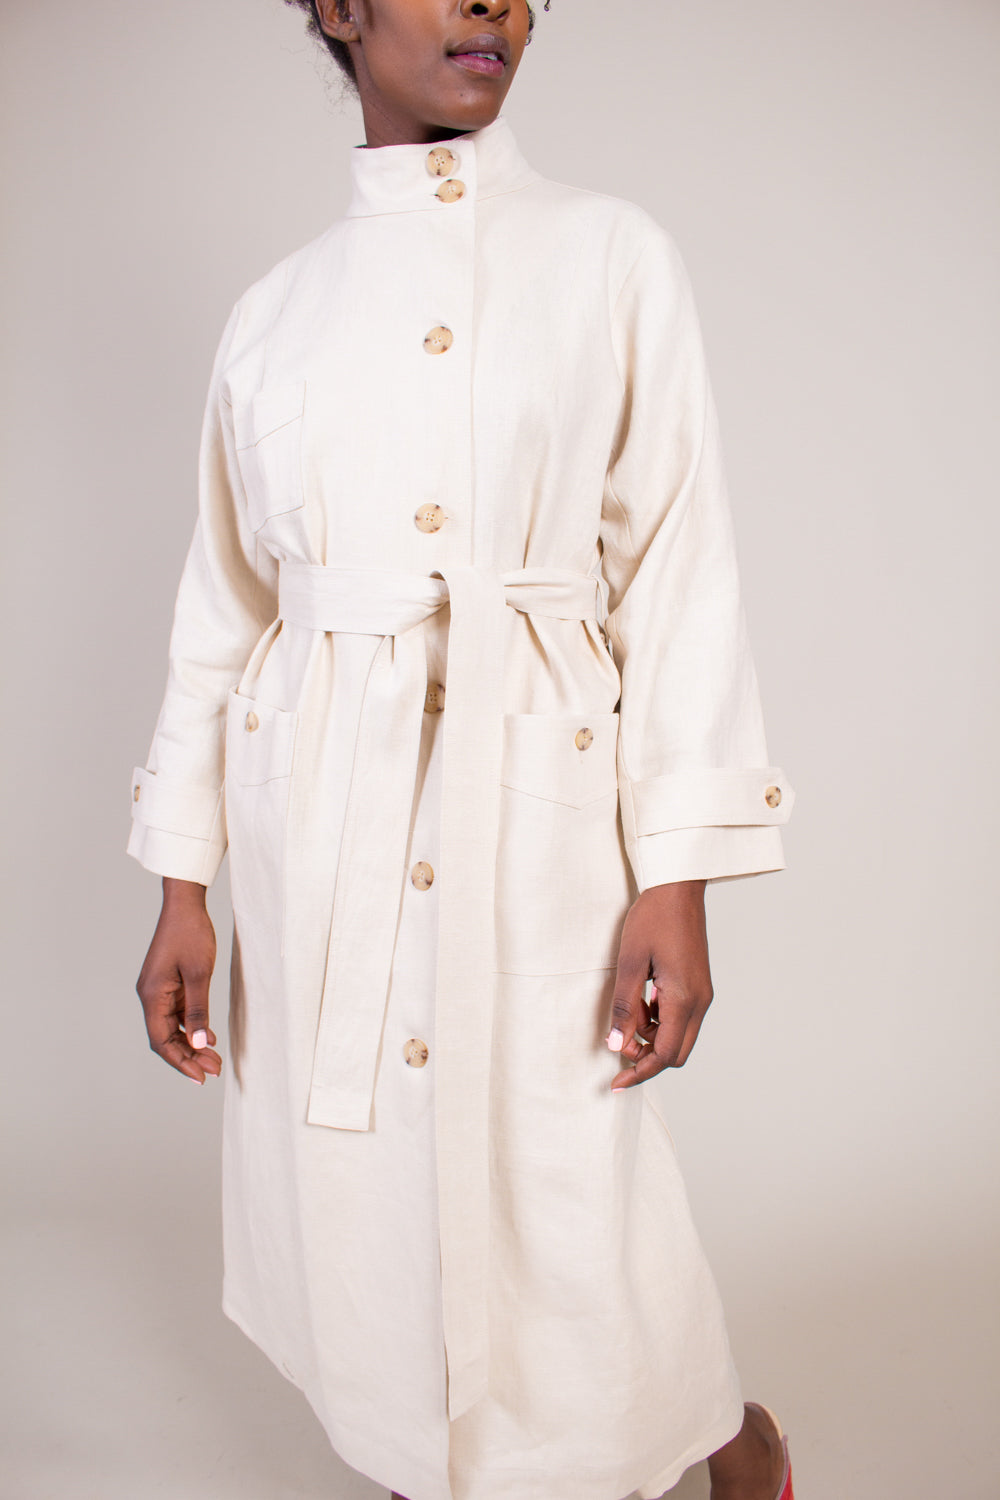 Alexander Duster in Natural